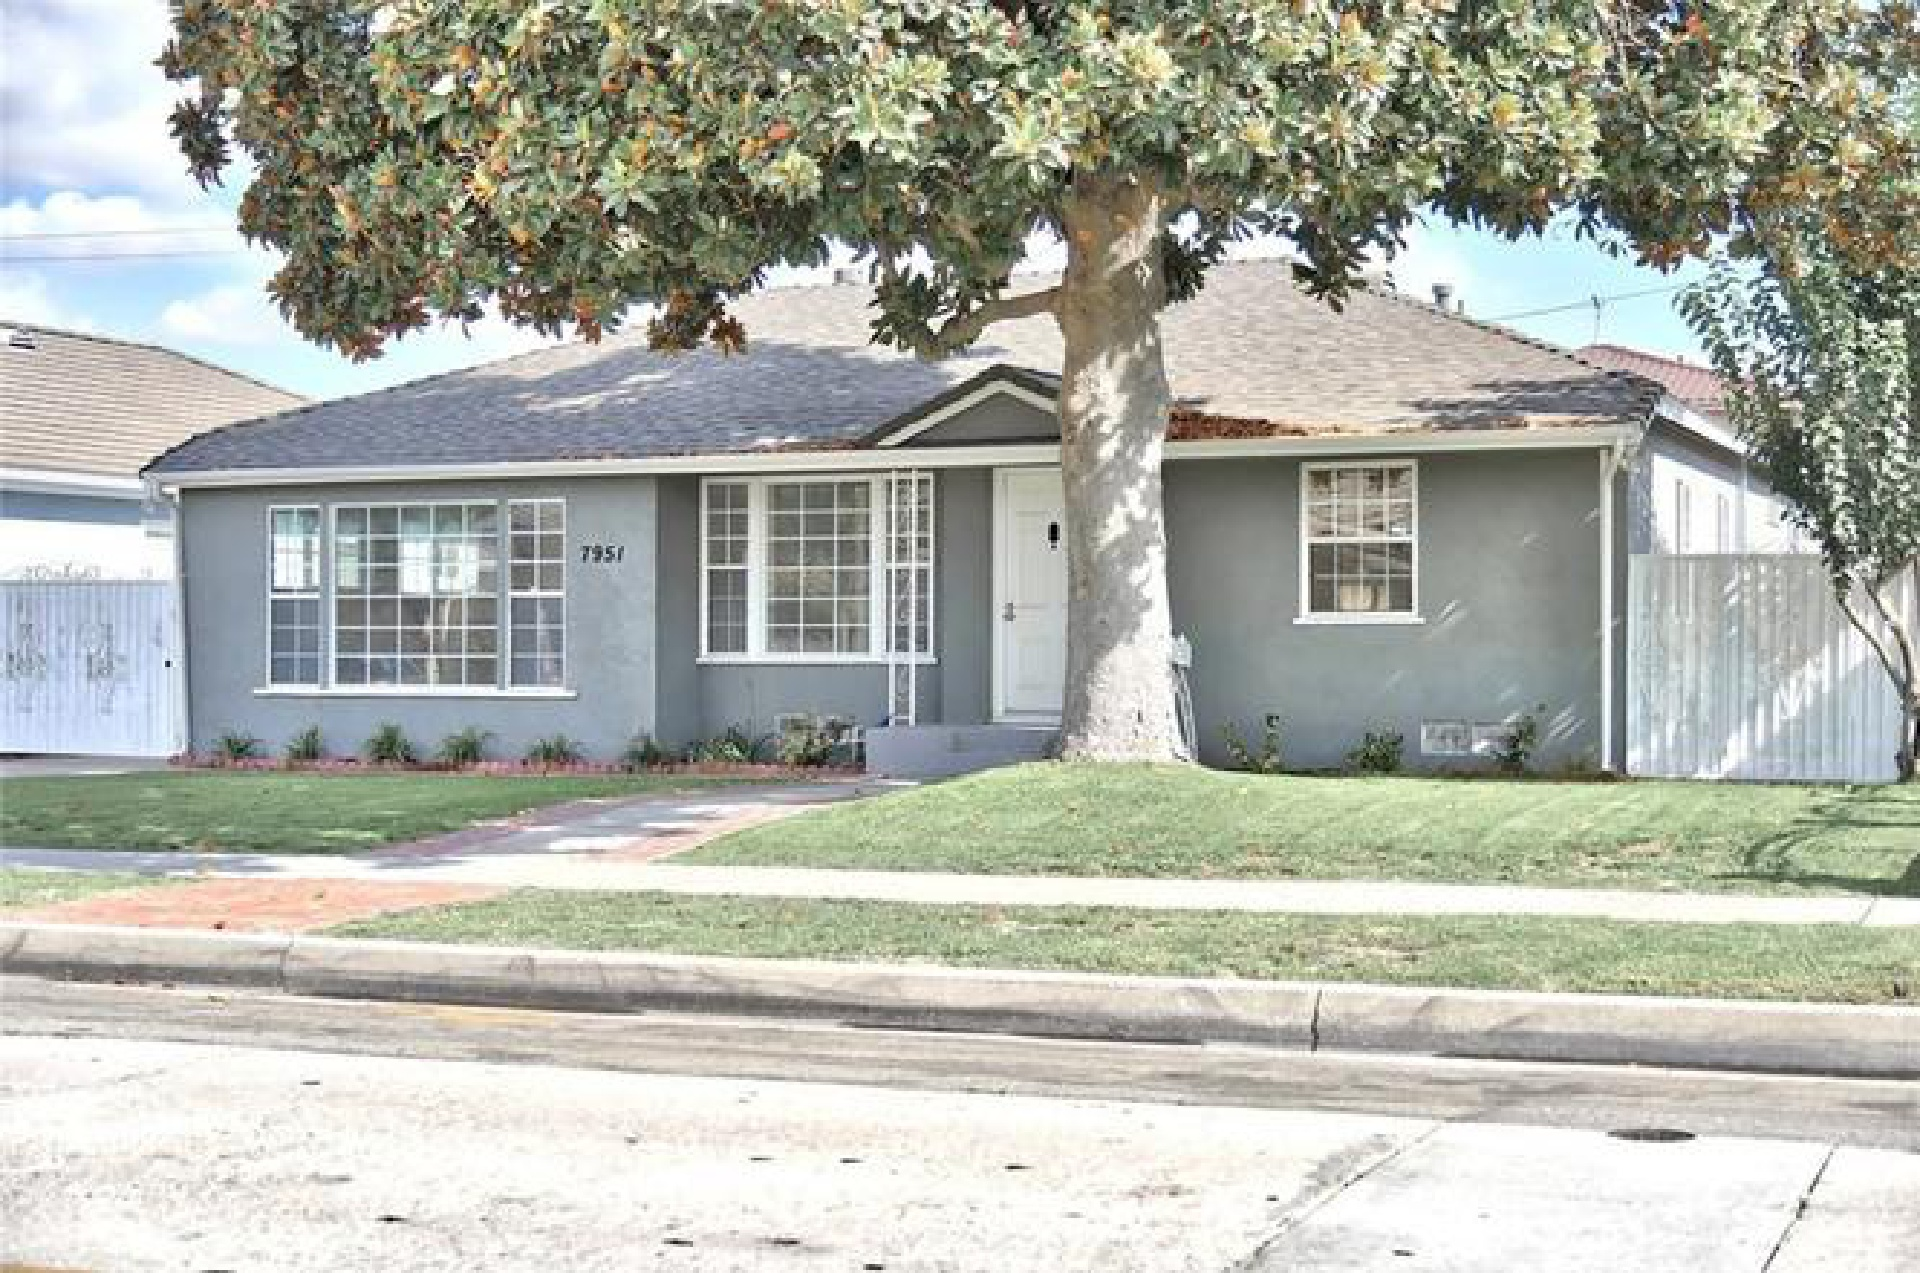 7951 Quill Drive, Downey CA: